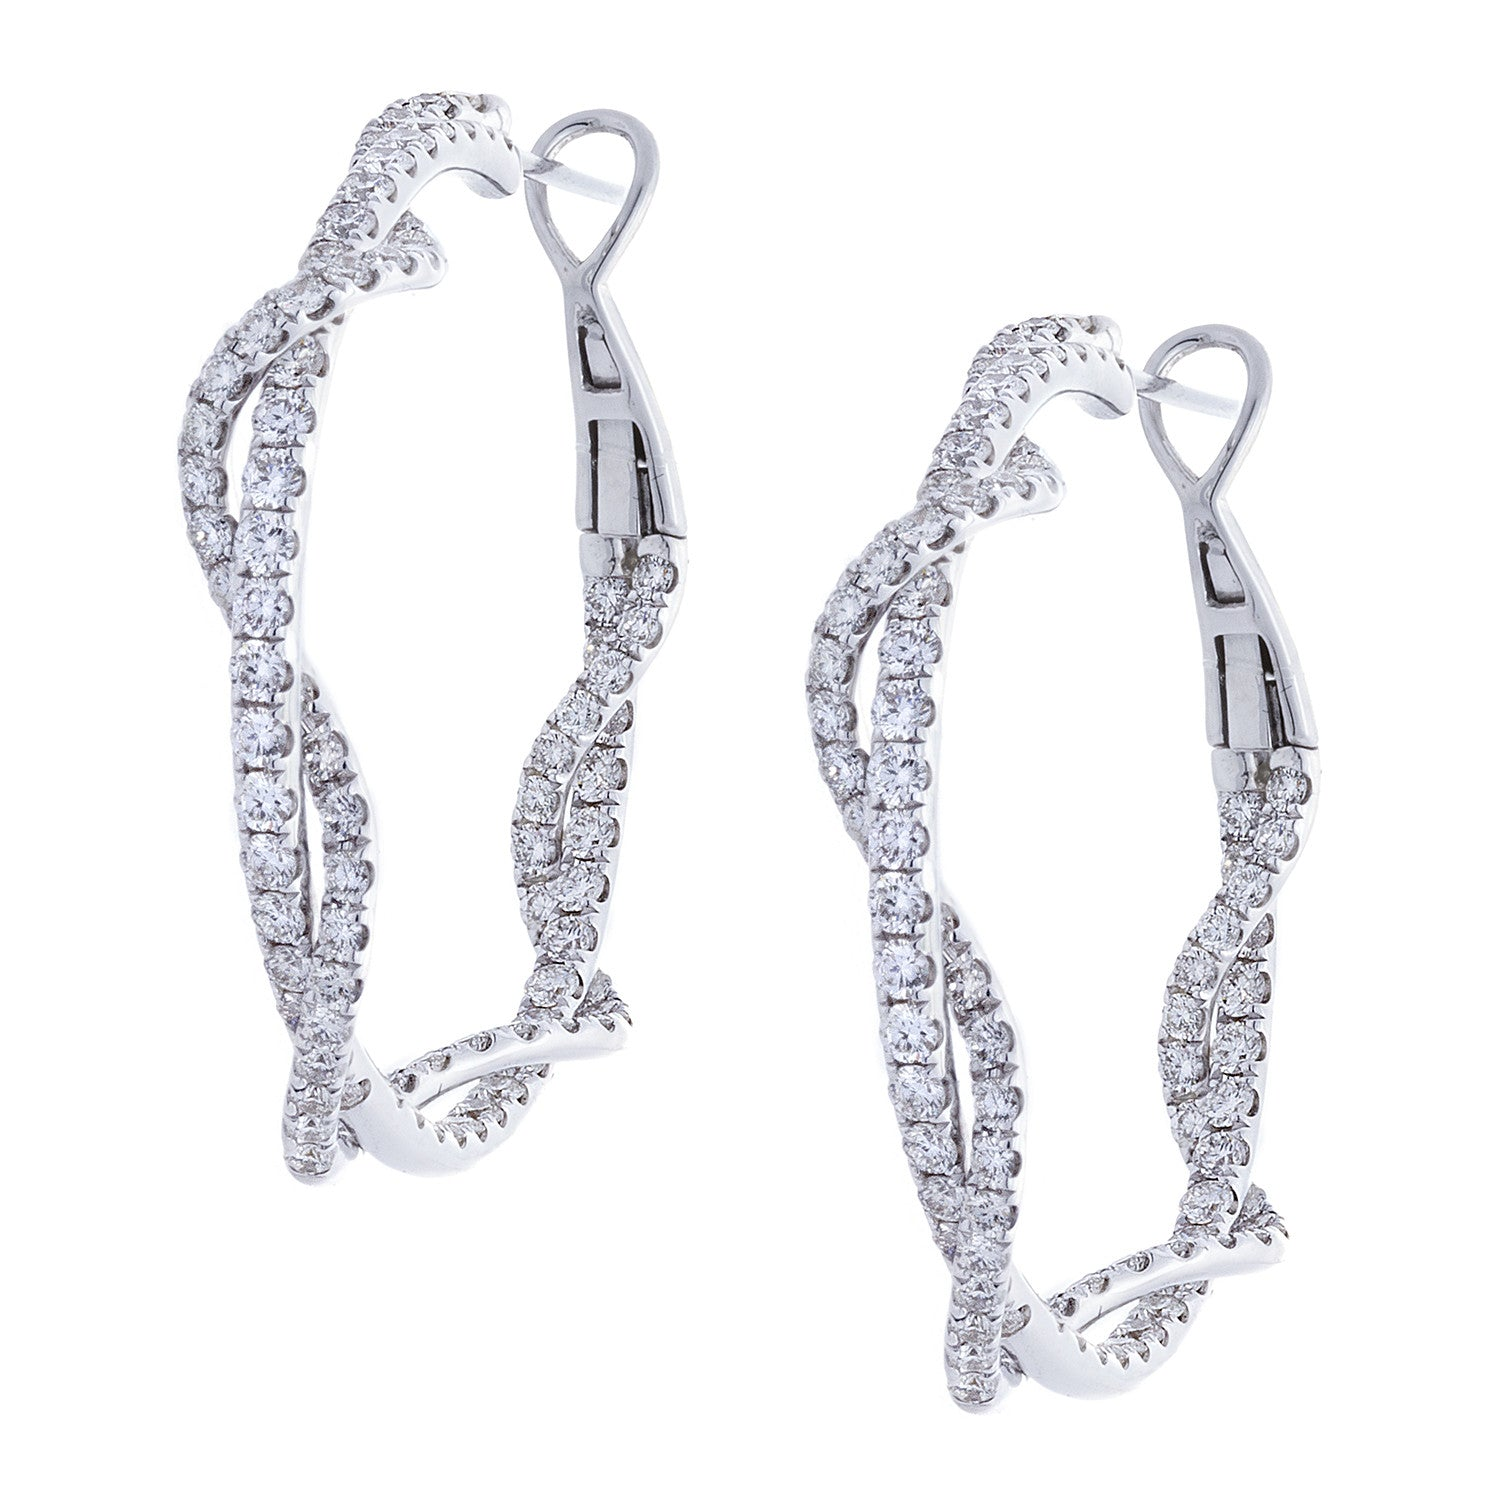 Diamonds & 18K White Gold Braid Hoop Earrings - SOLD/CAN BE SPECIAL ORDERED WITH 4-6 WEEKS DELIVERY TIME FRAME